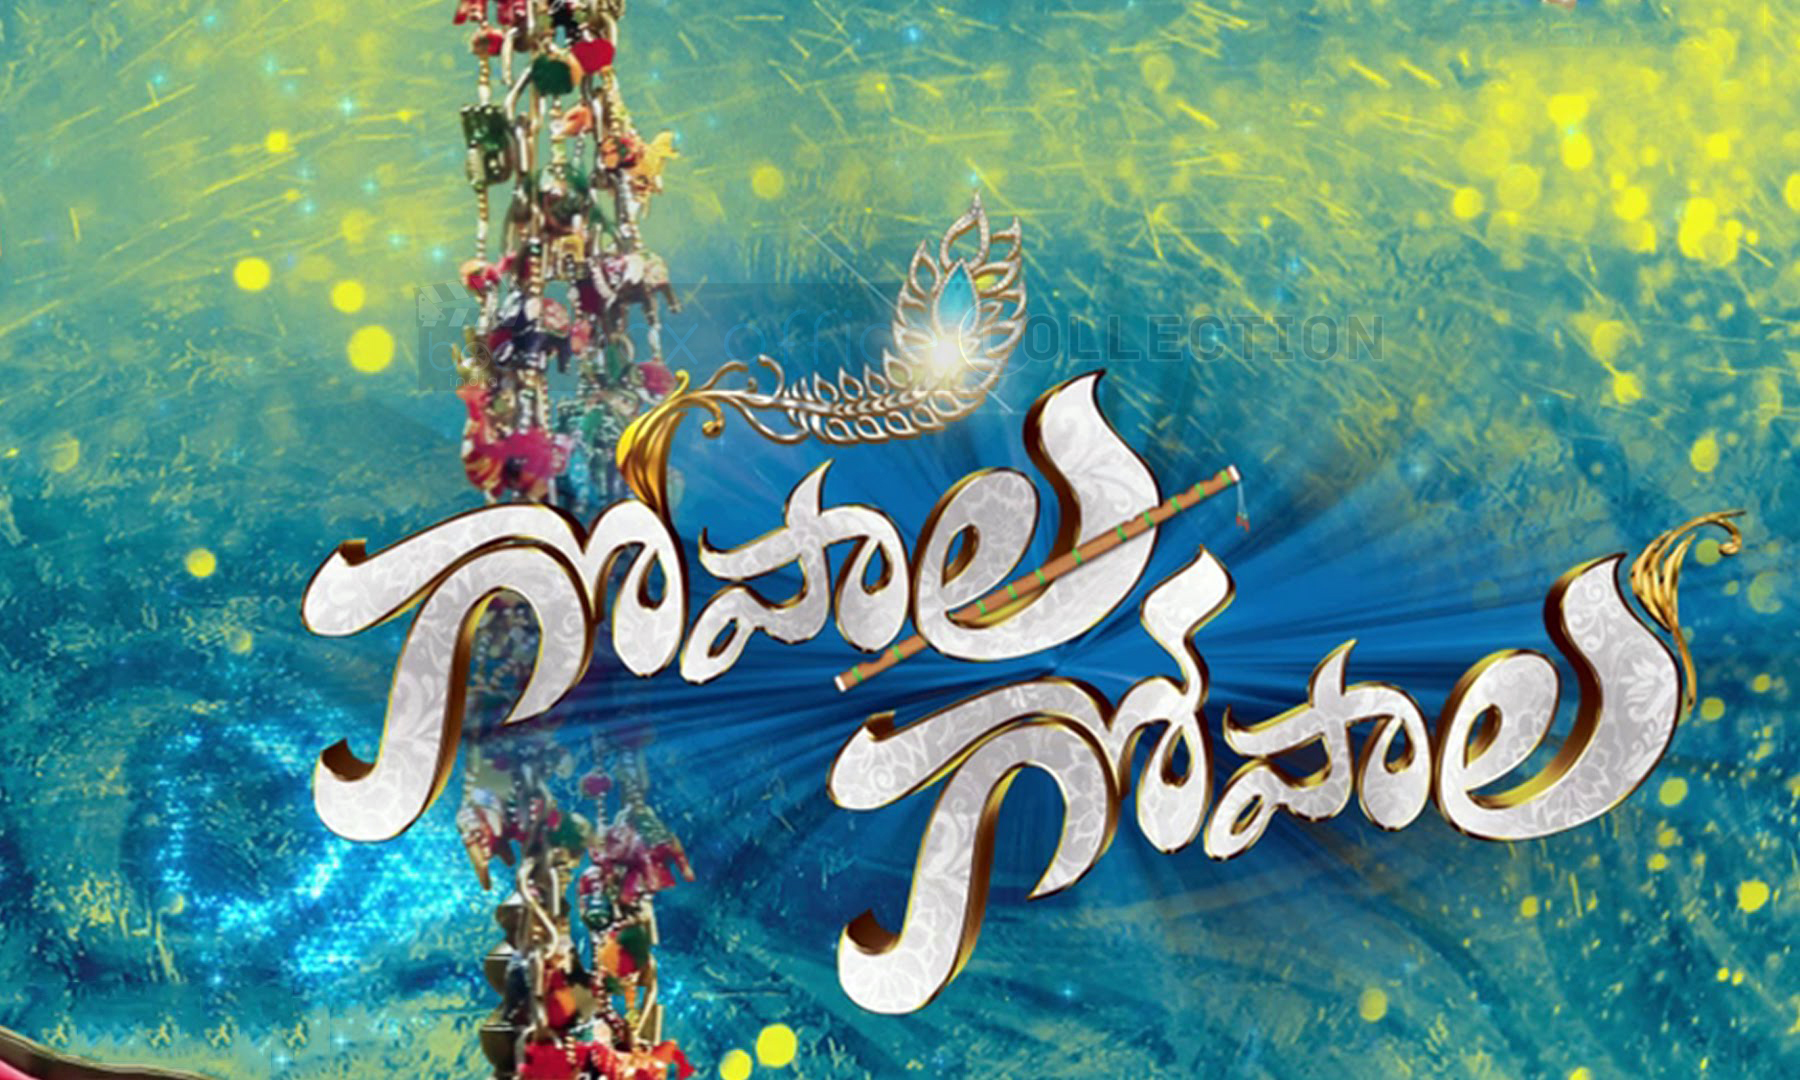 Gopala Gopala box Office collection